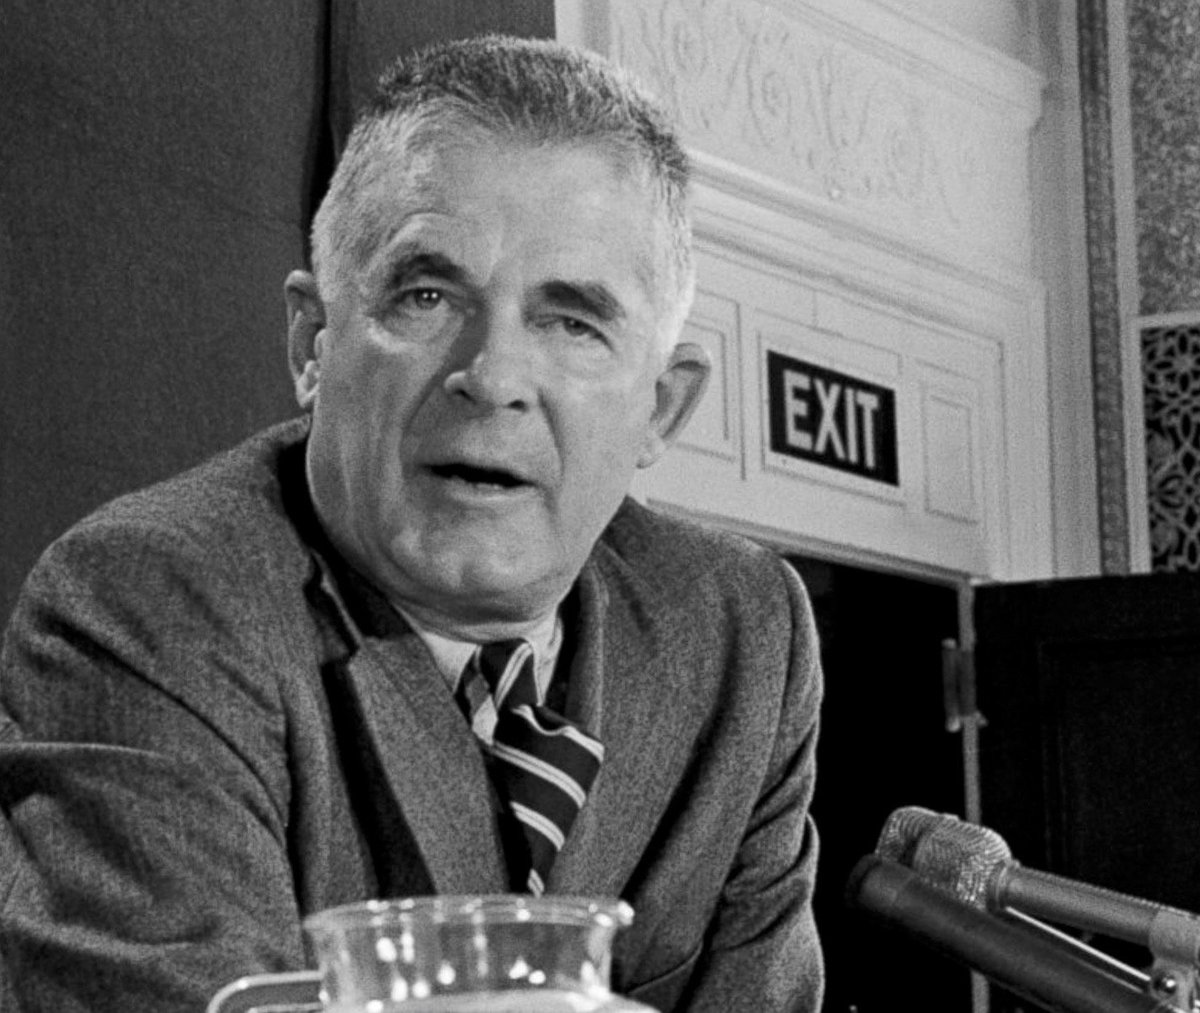 After he was fired at President Nixon's behest 45 years ago tonight, Watergate special prosecutor Archibald Cox said, 'Whether ours shall continue a government of laws and not of men is now for Congress to decide and, ultimately, the American people.'